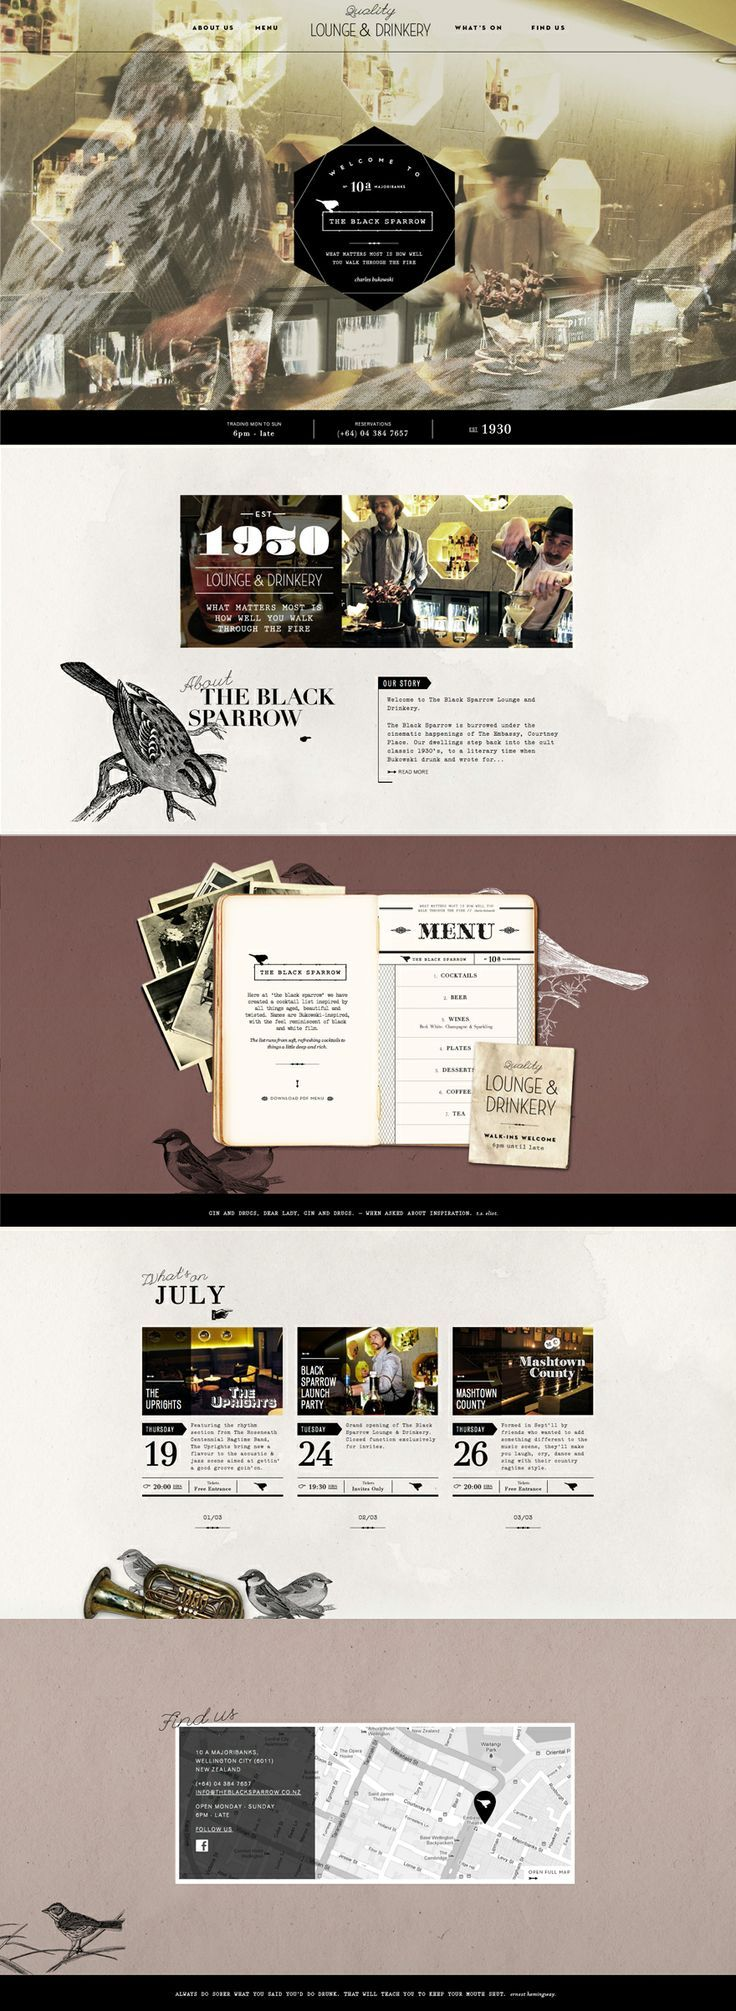 The Black Sparrow. Classic occasion. #webdesign (More design inspiration at www.aldenchong.com)